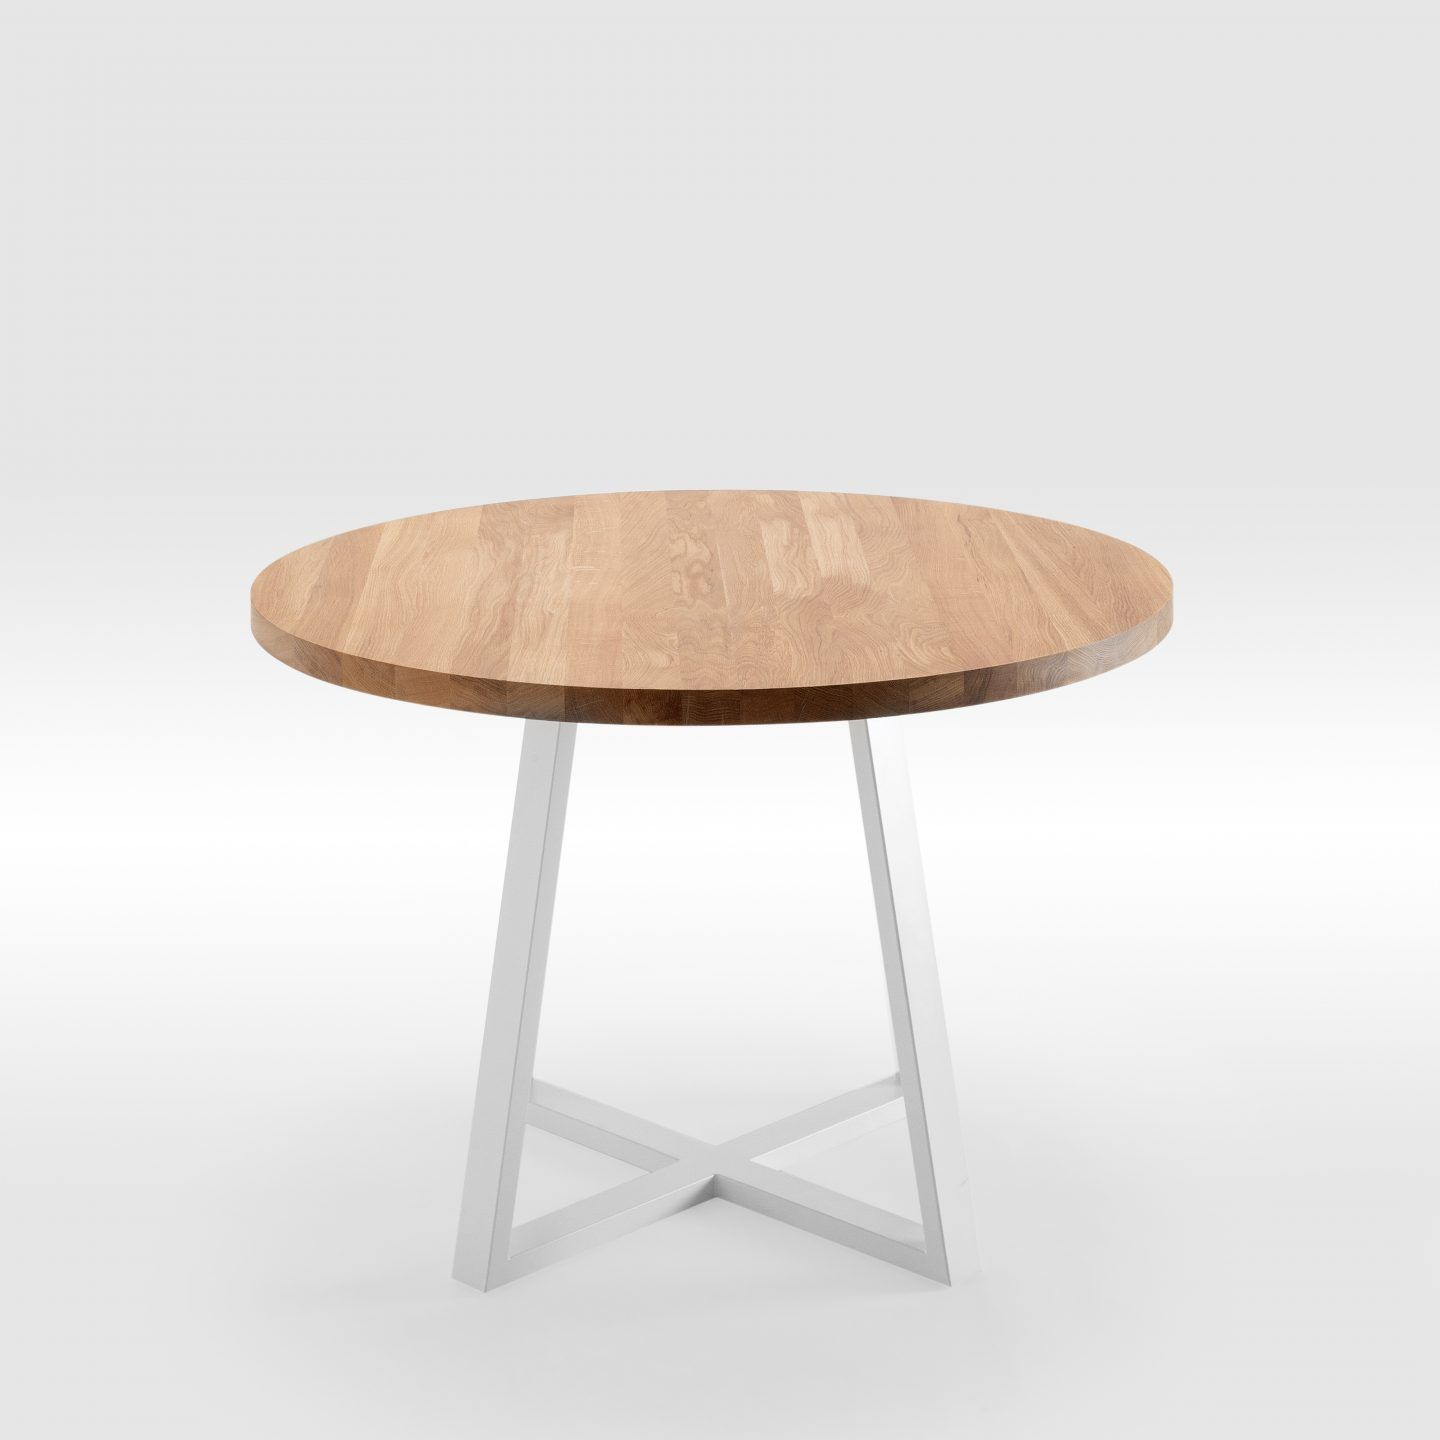 Discover Round Natural Oak Table With Modern Steel Legs By On